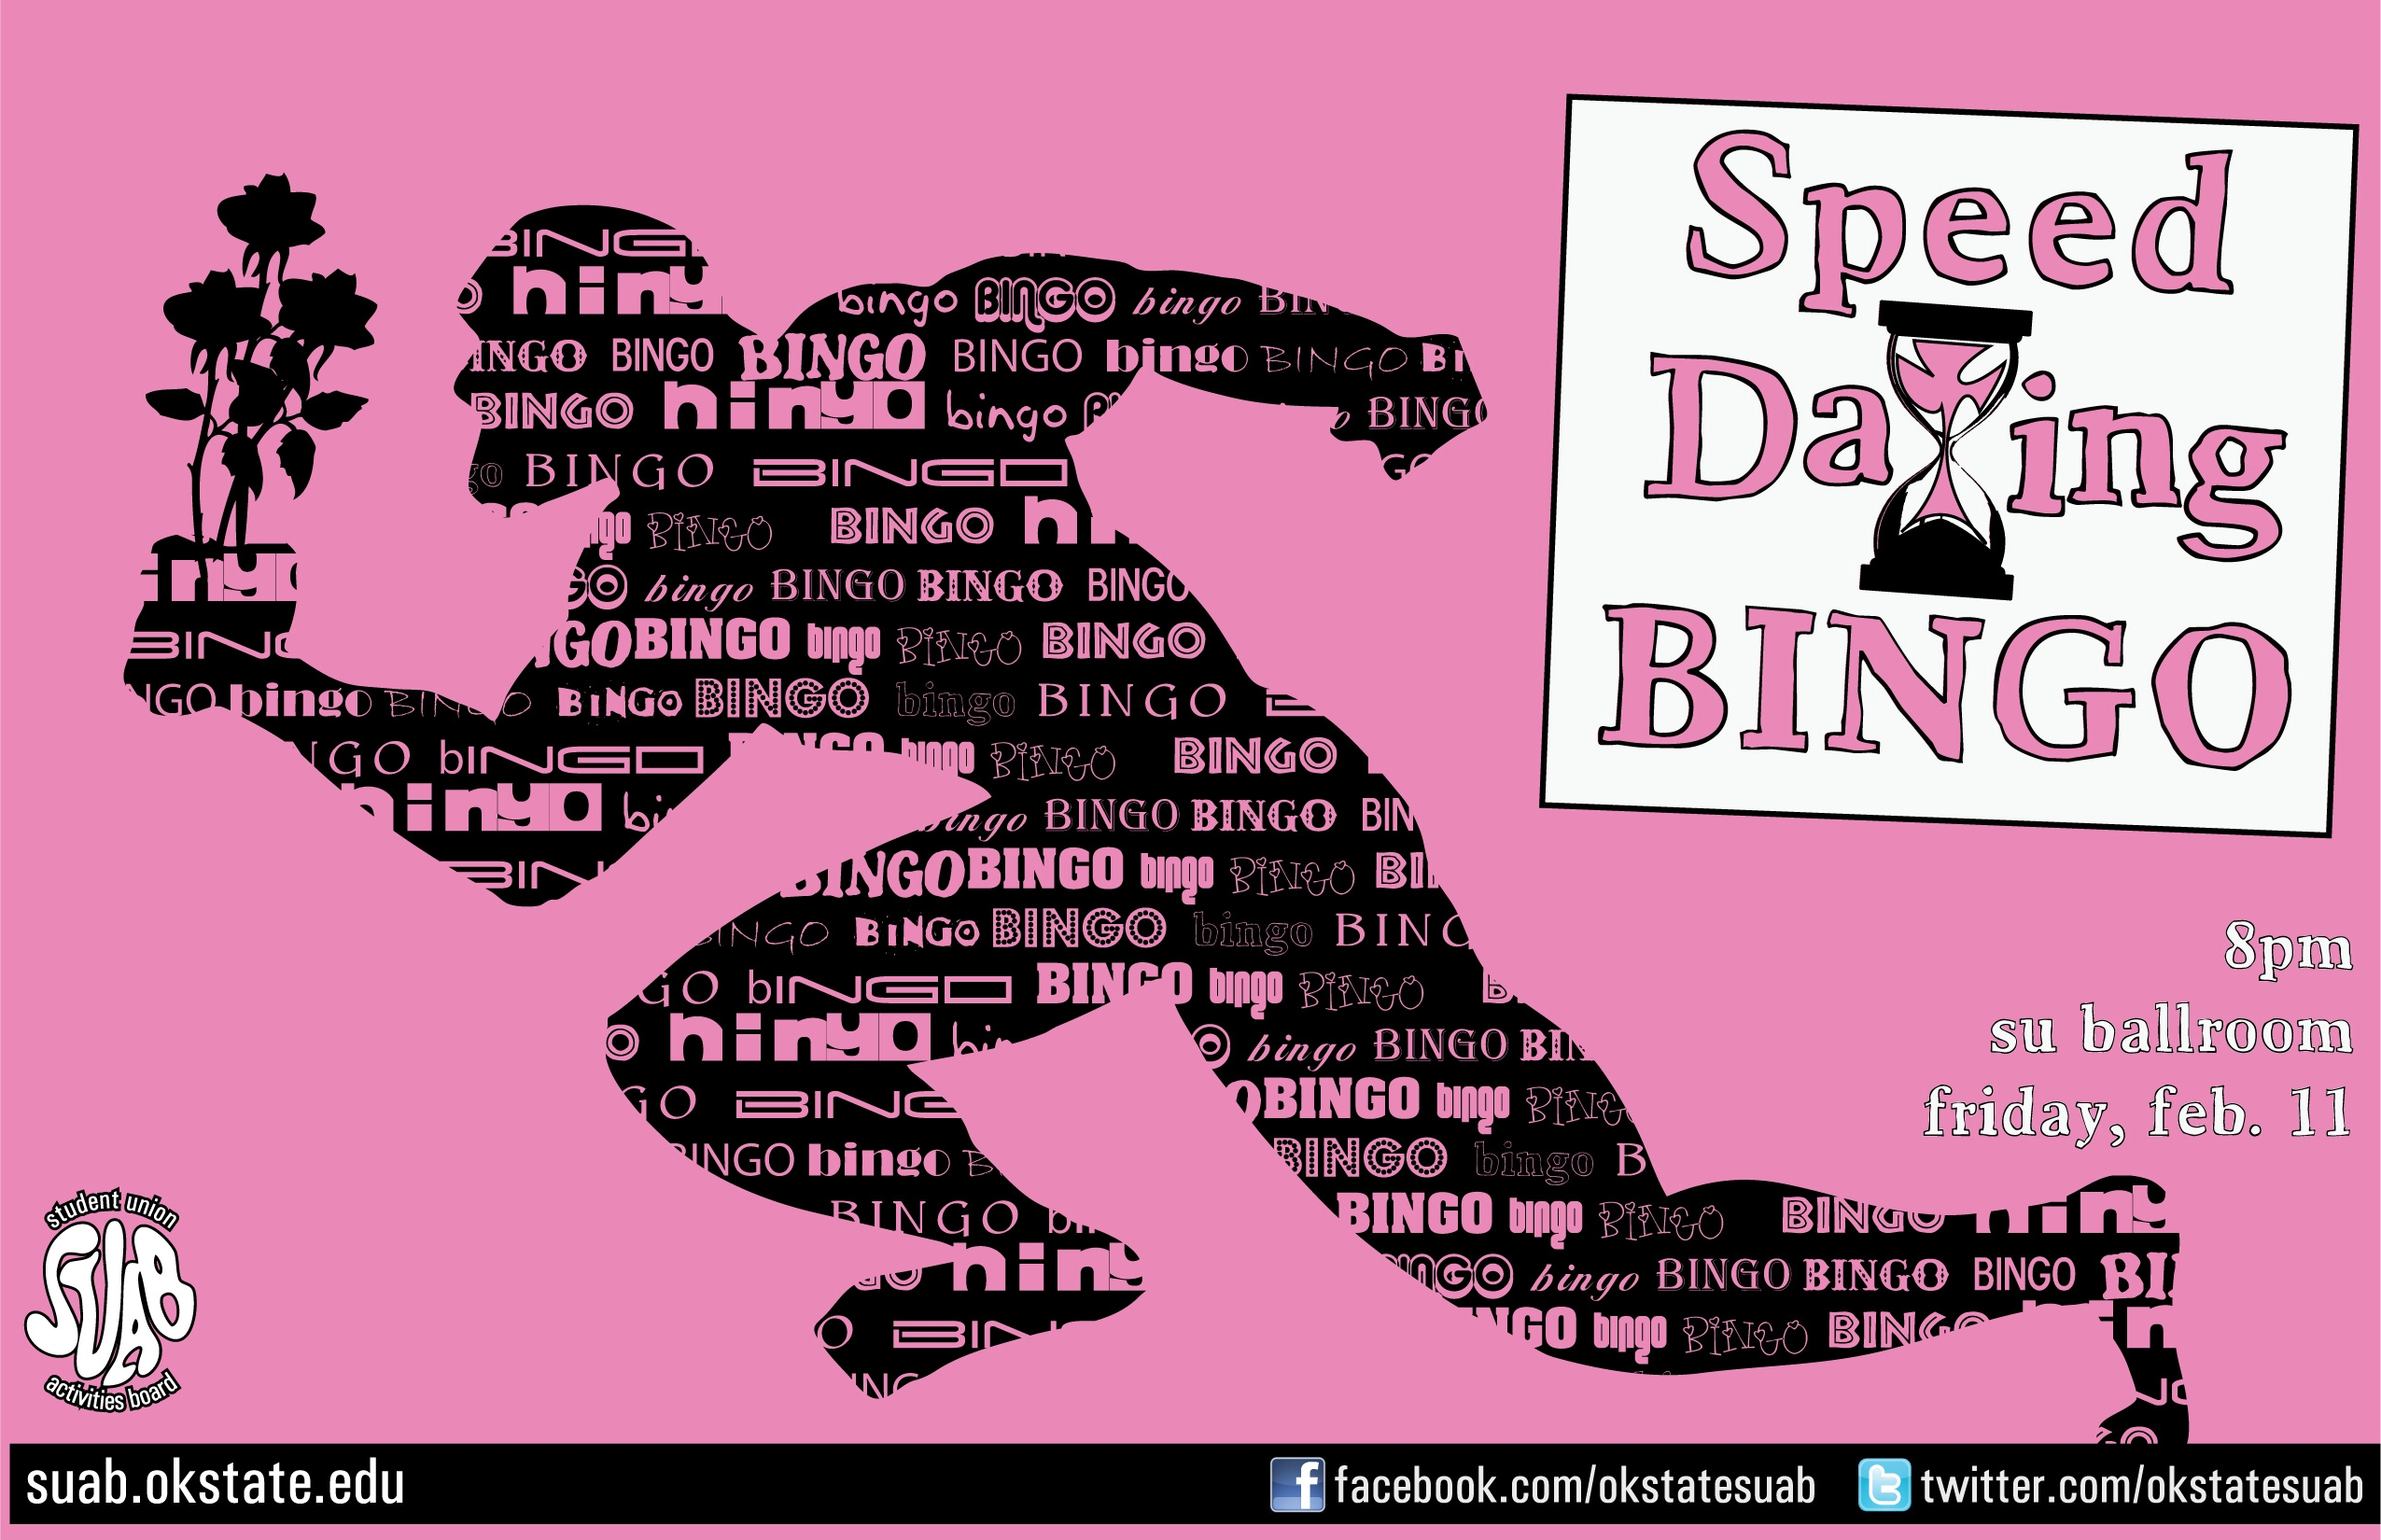 Speed dating bingo